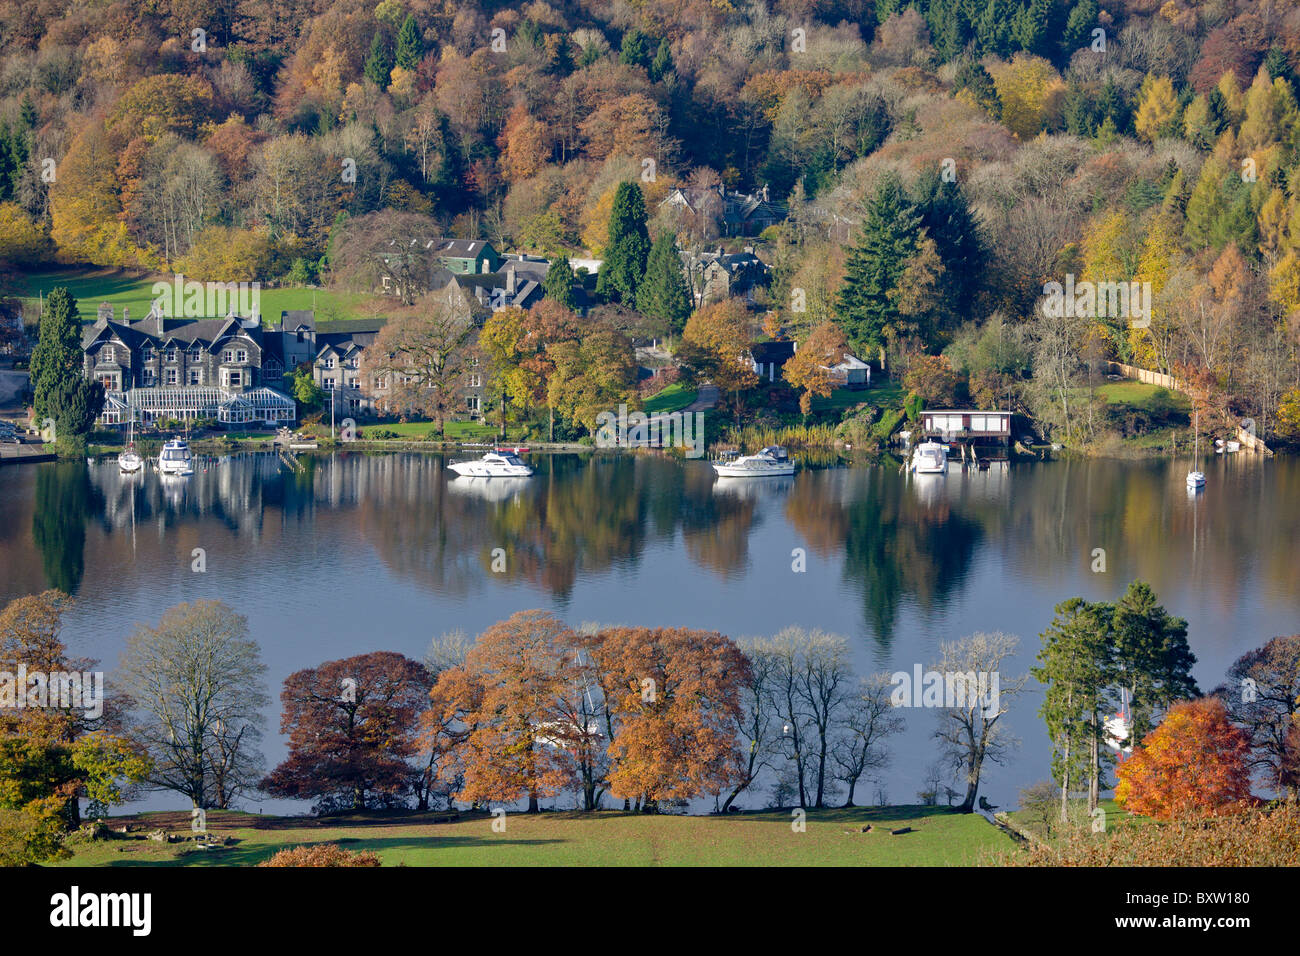 Fell Foot Park and Lakeside in the Autumn, Lake Windermere, Cumbria, England - Stock Image